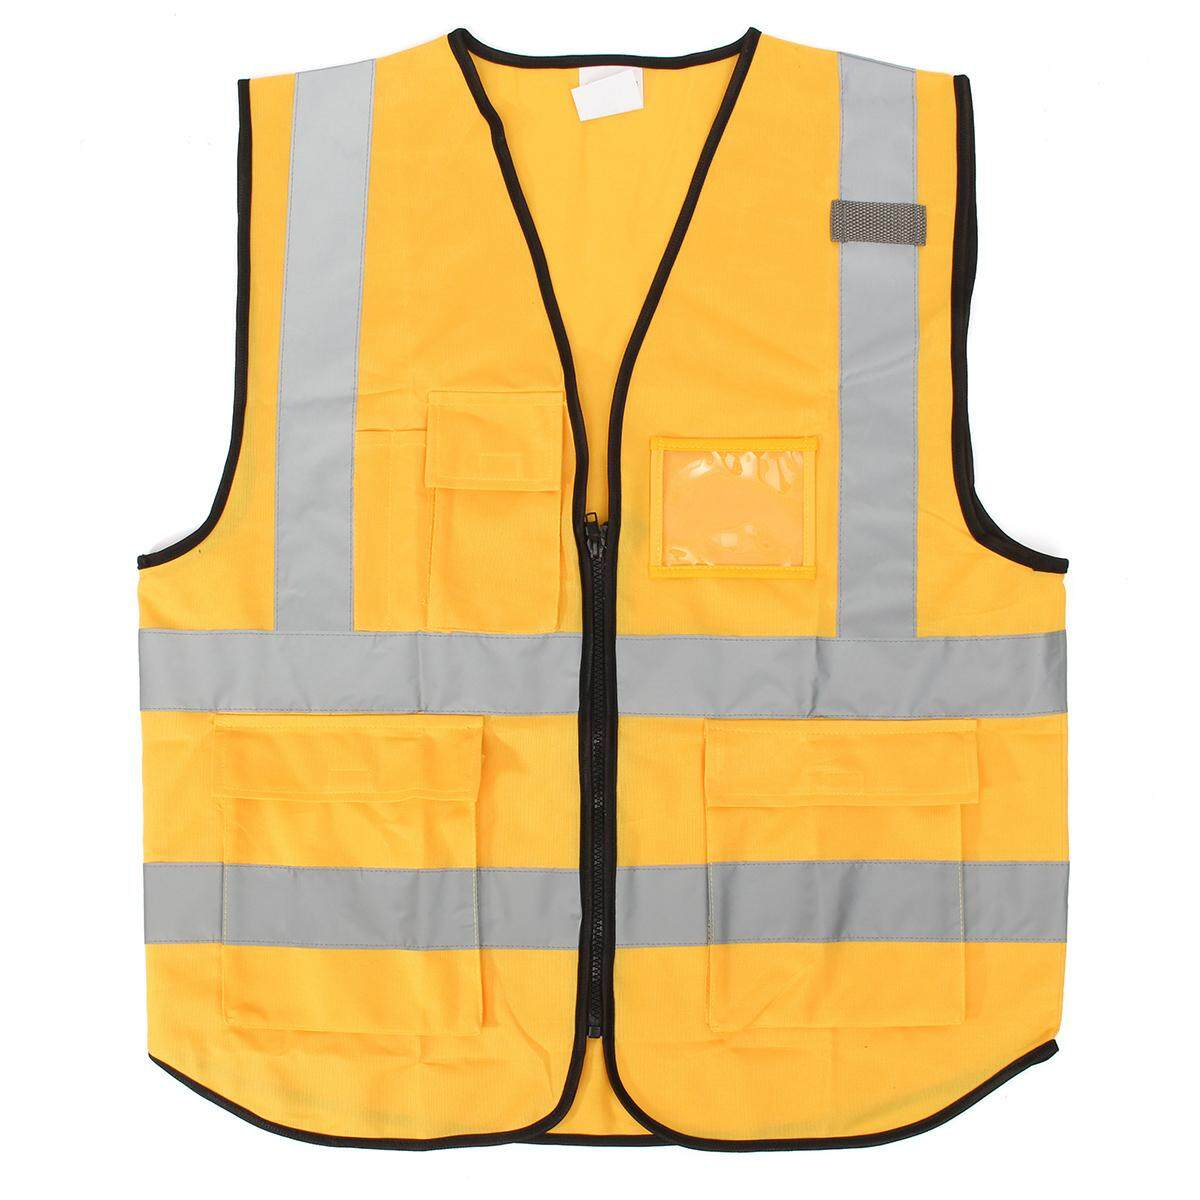 Yellow L Hi Vis Vest Workwear Clothing Safety Reflective Vest Safety Vest Reflective Logo Printing By Freebang